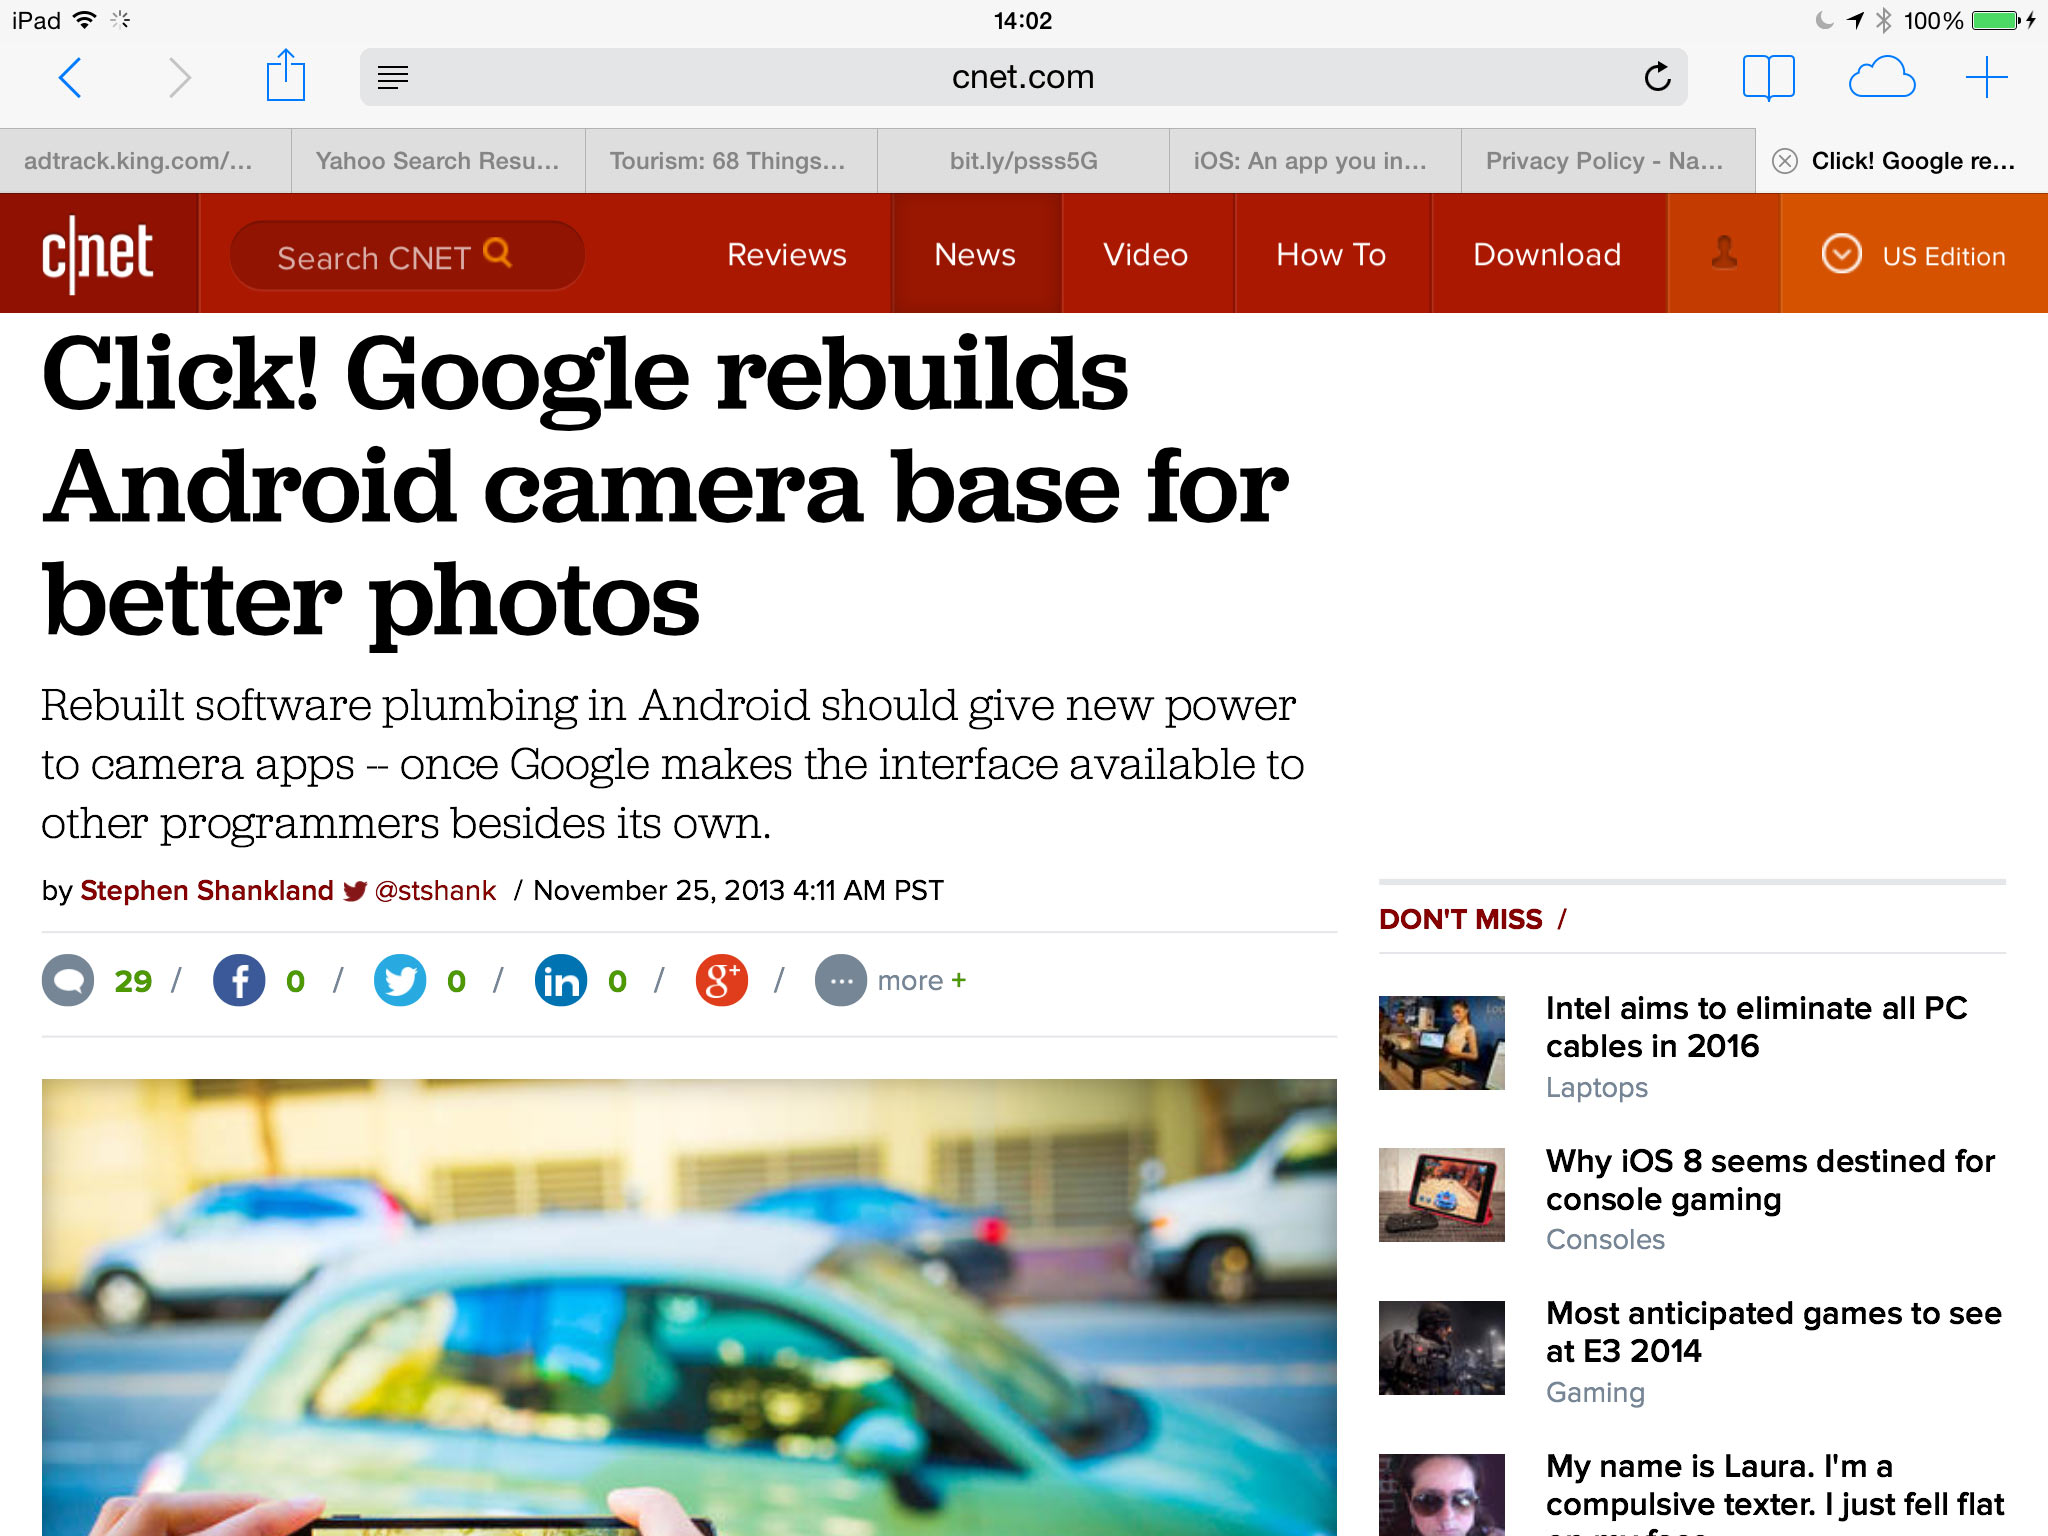 """Safari on an iPad with iOS 7 hides the full URL of this story, showing just """"cnet.com"""" as the Web address."""